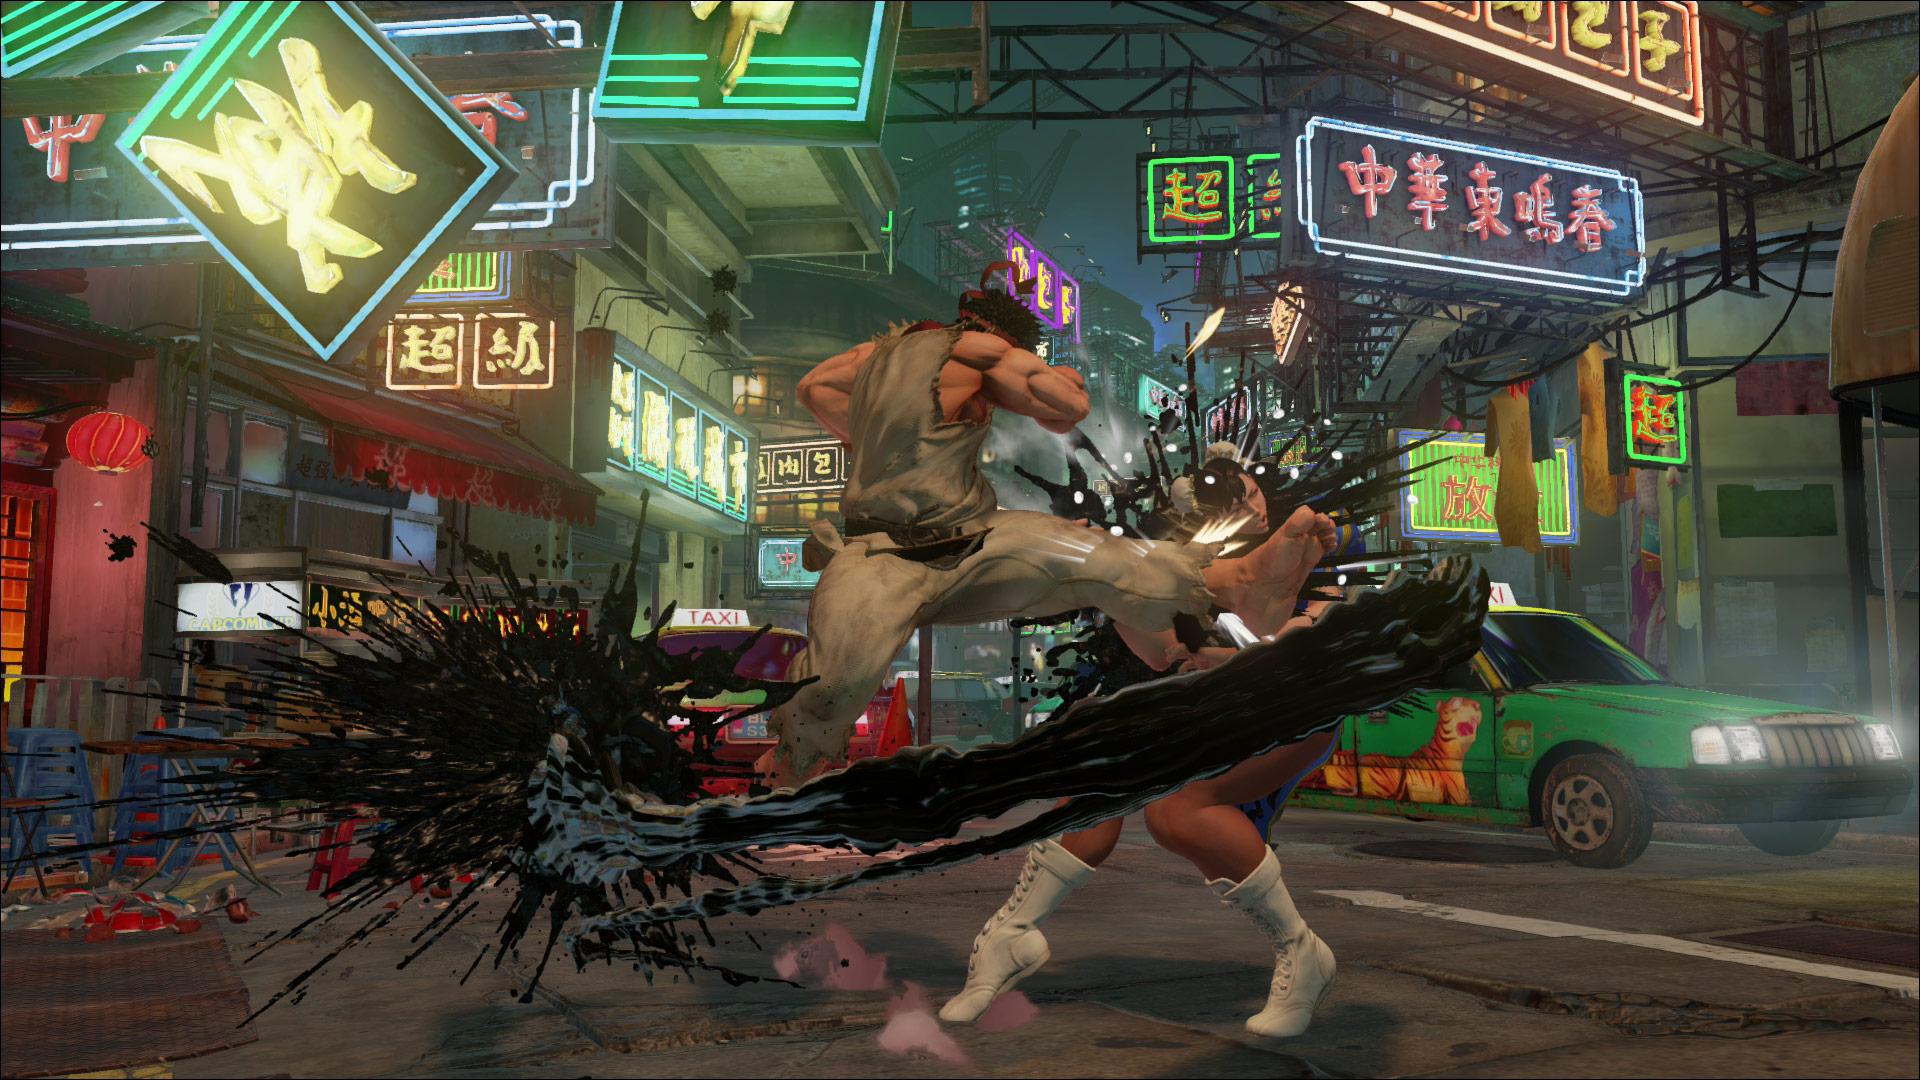 Street Fighter 5 high resolution screen shots, cover art and logo image #2